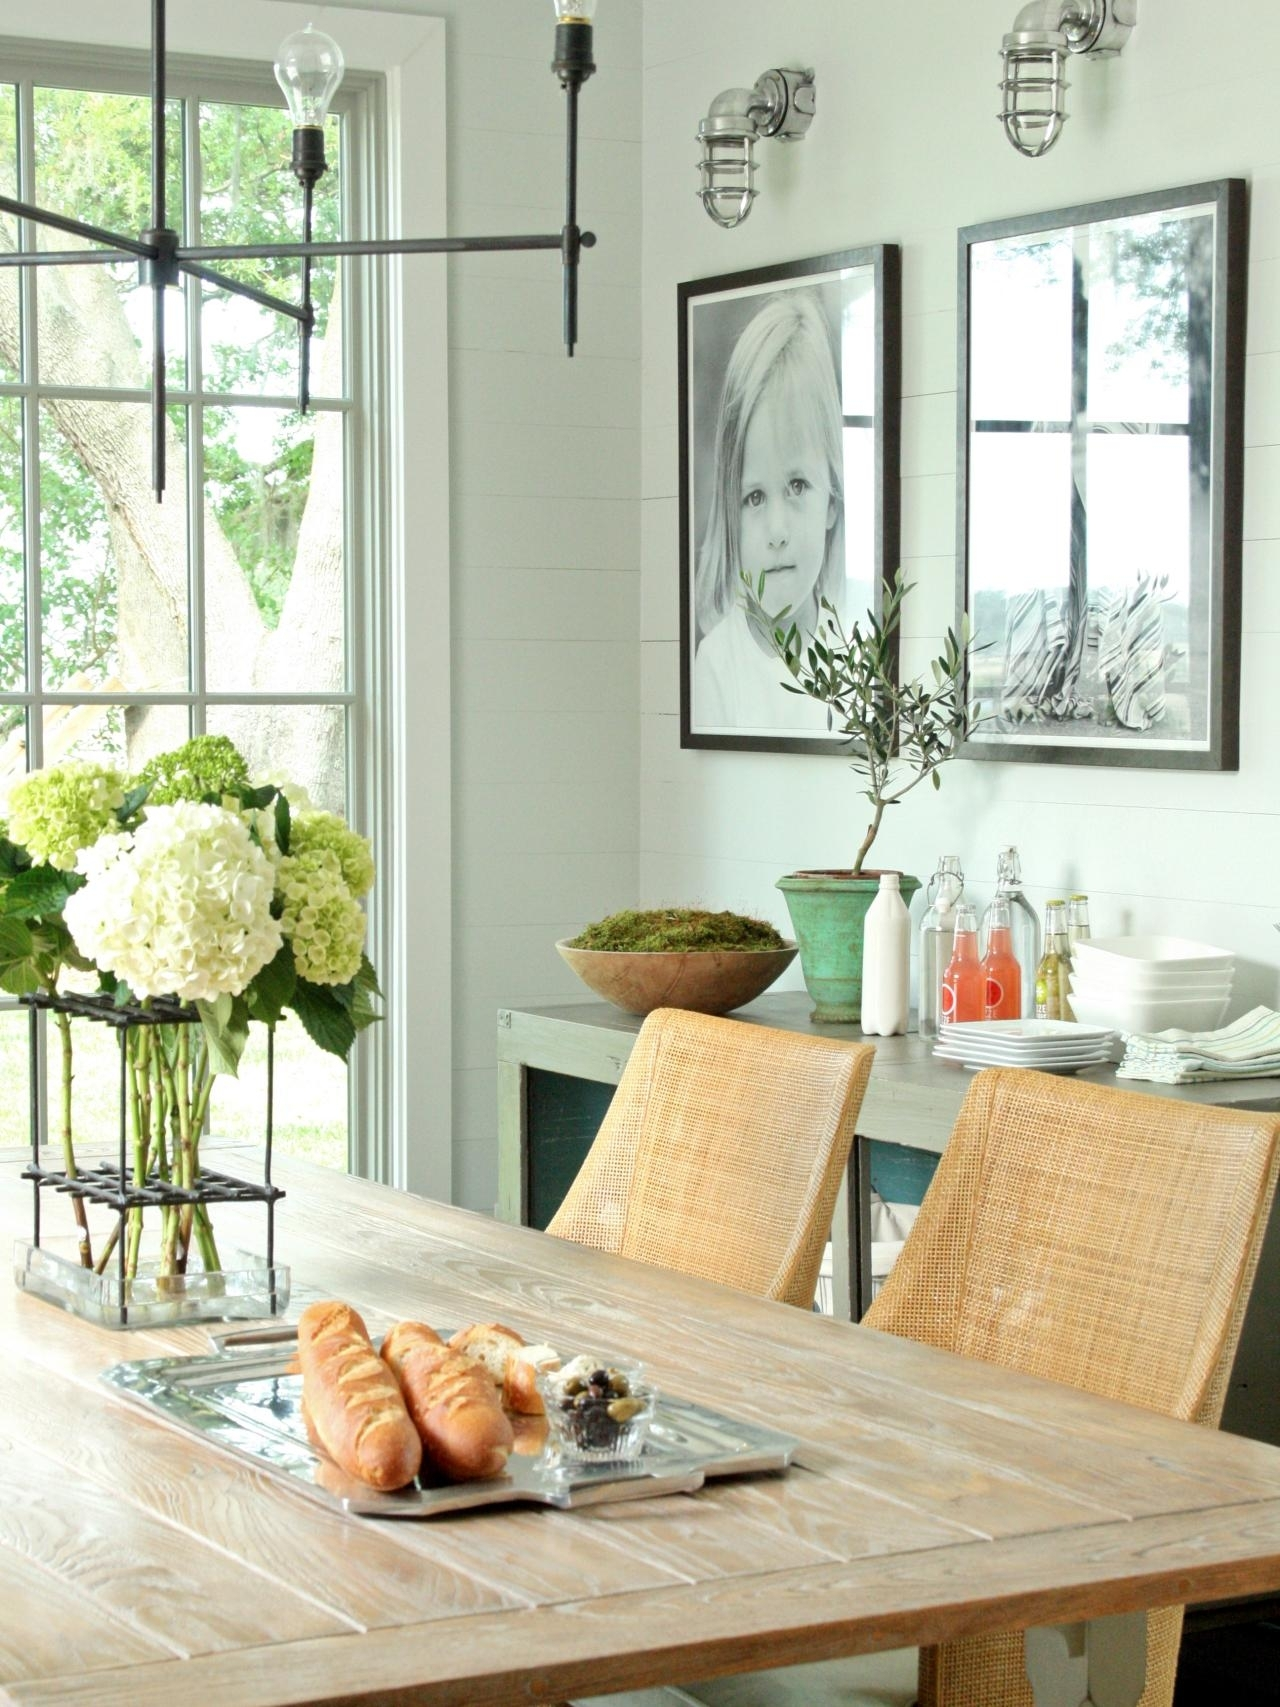 10 Fashionable Decorating Ideas For Dining Room %name 2020